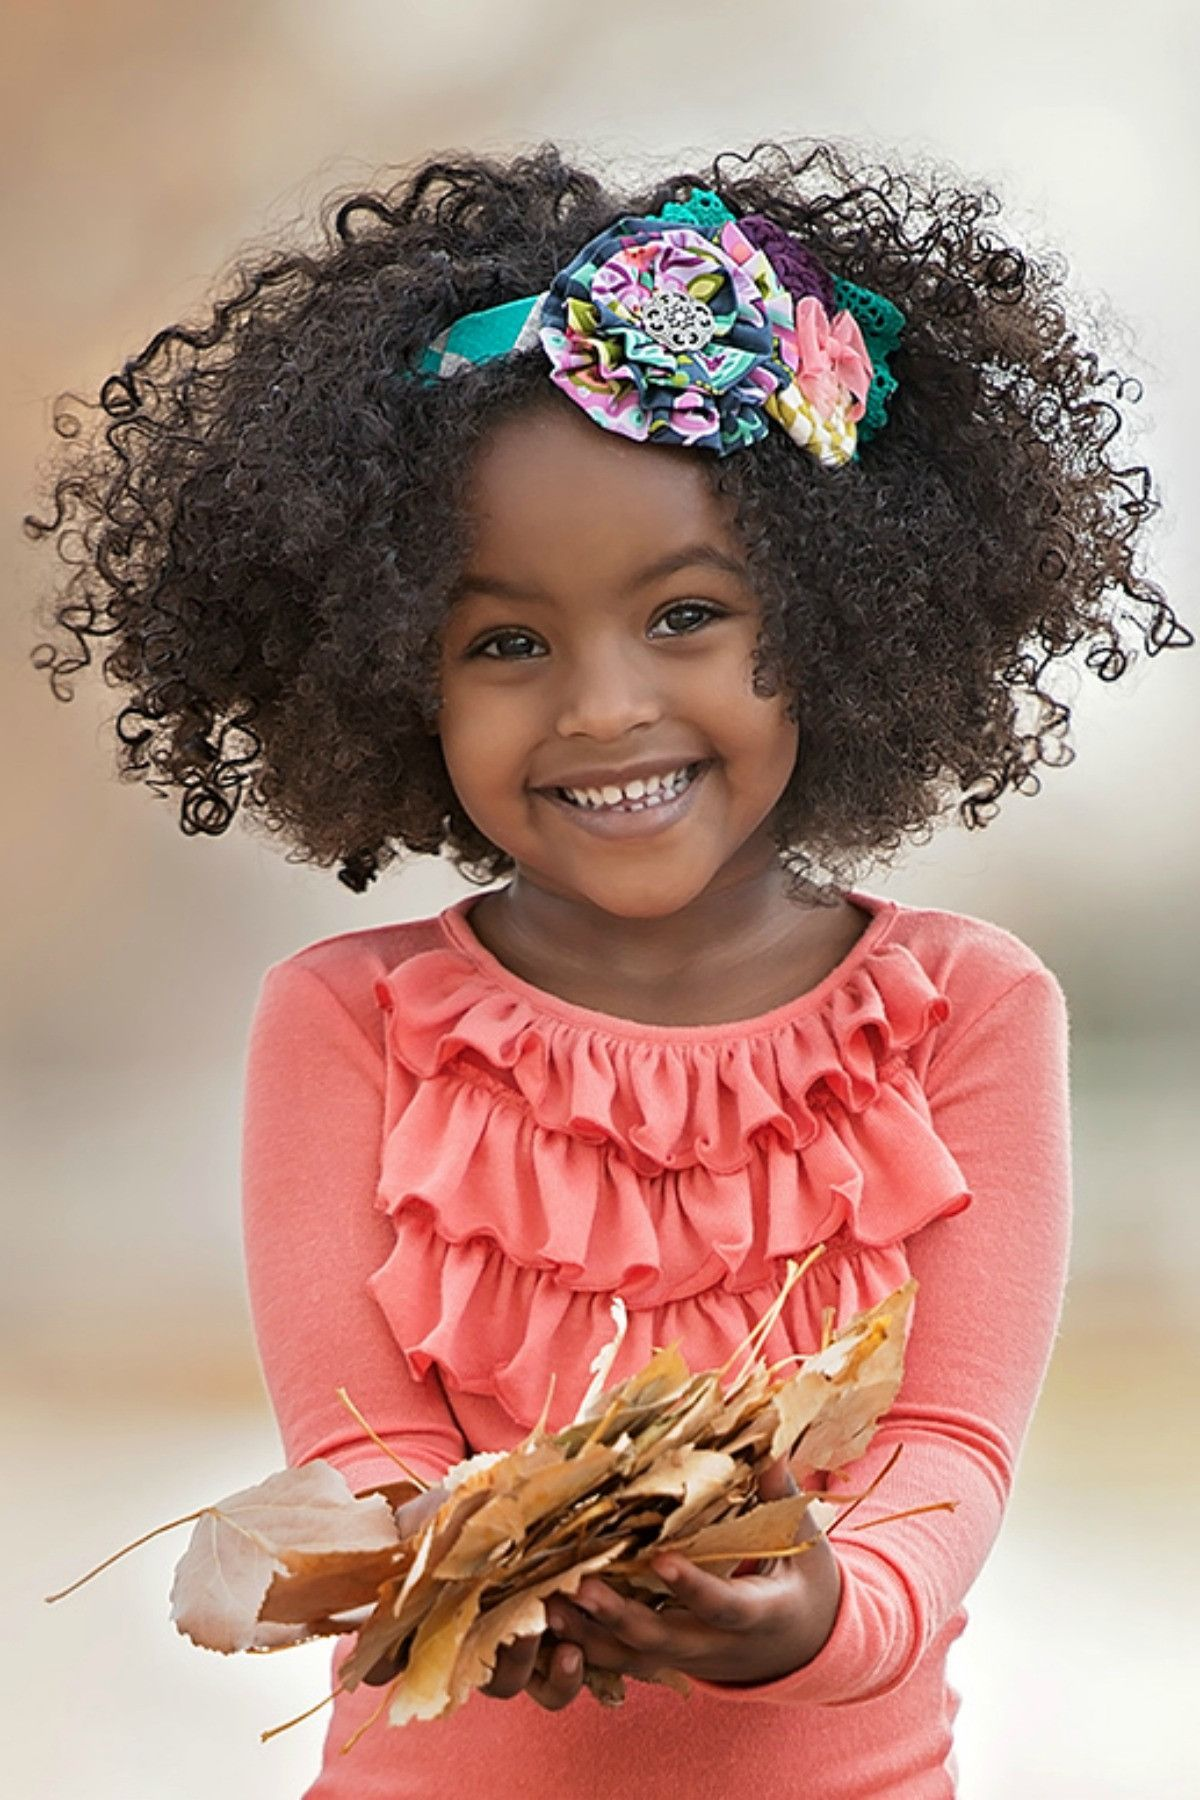 Everly Headband F16 Kids Curly Hairstyles Natural Hair